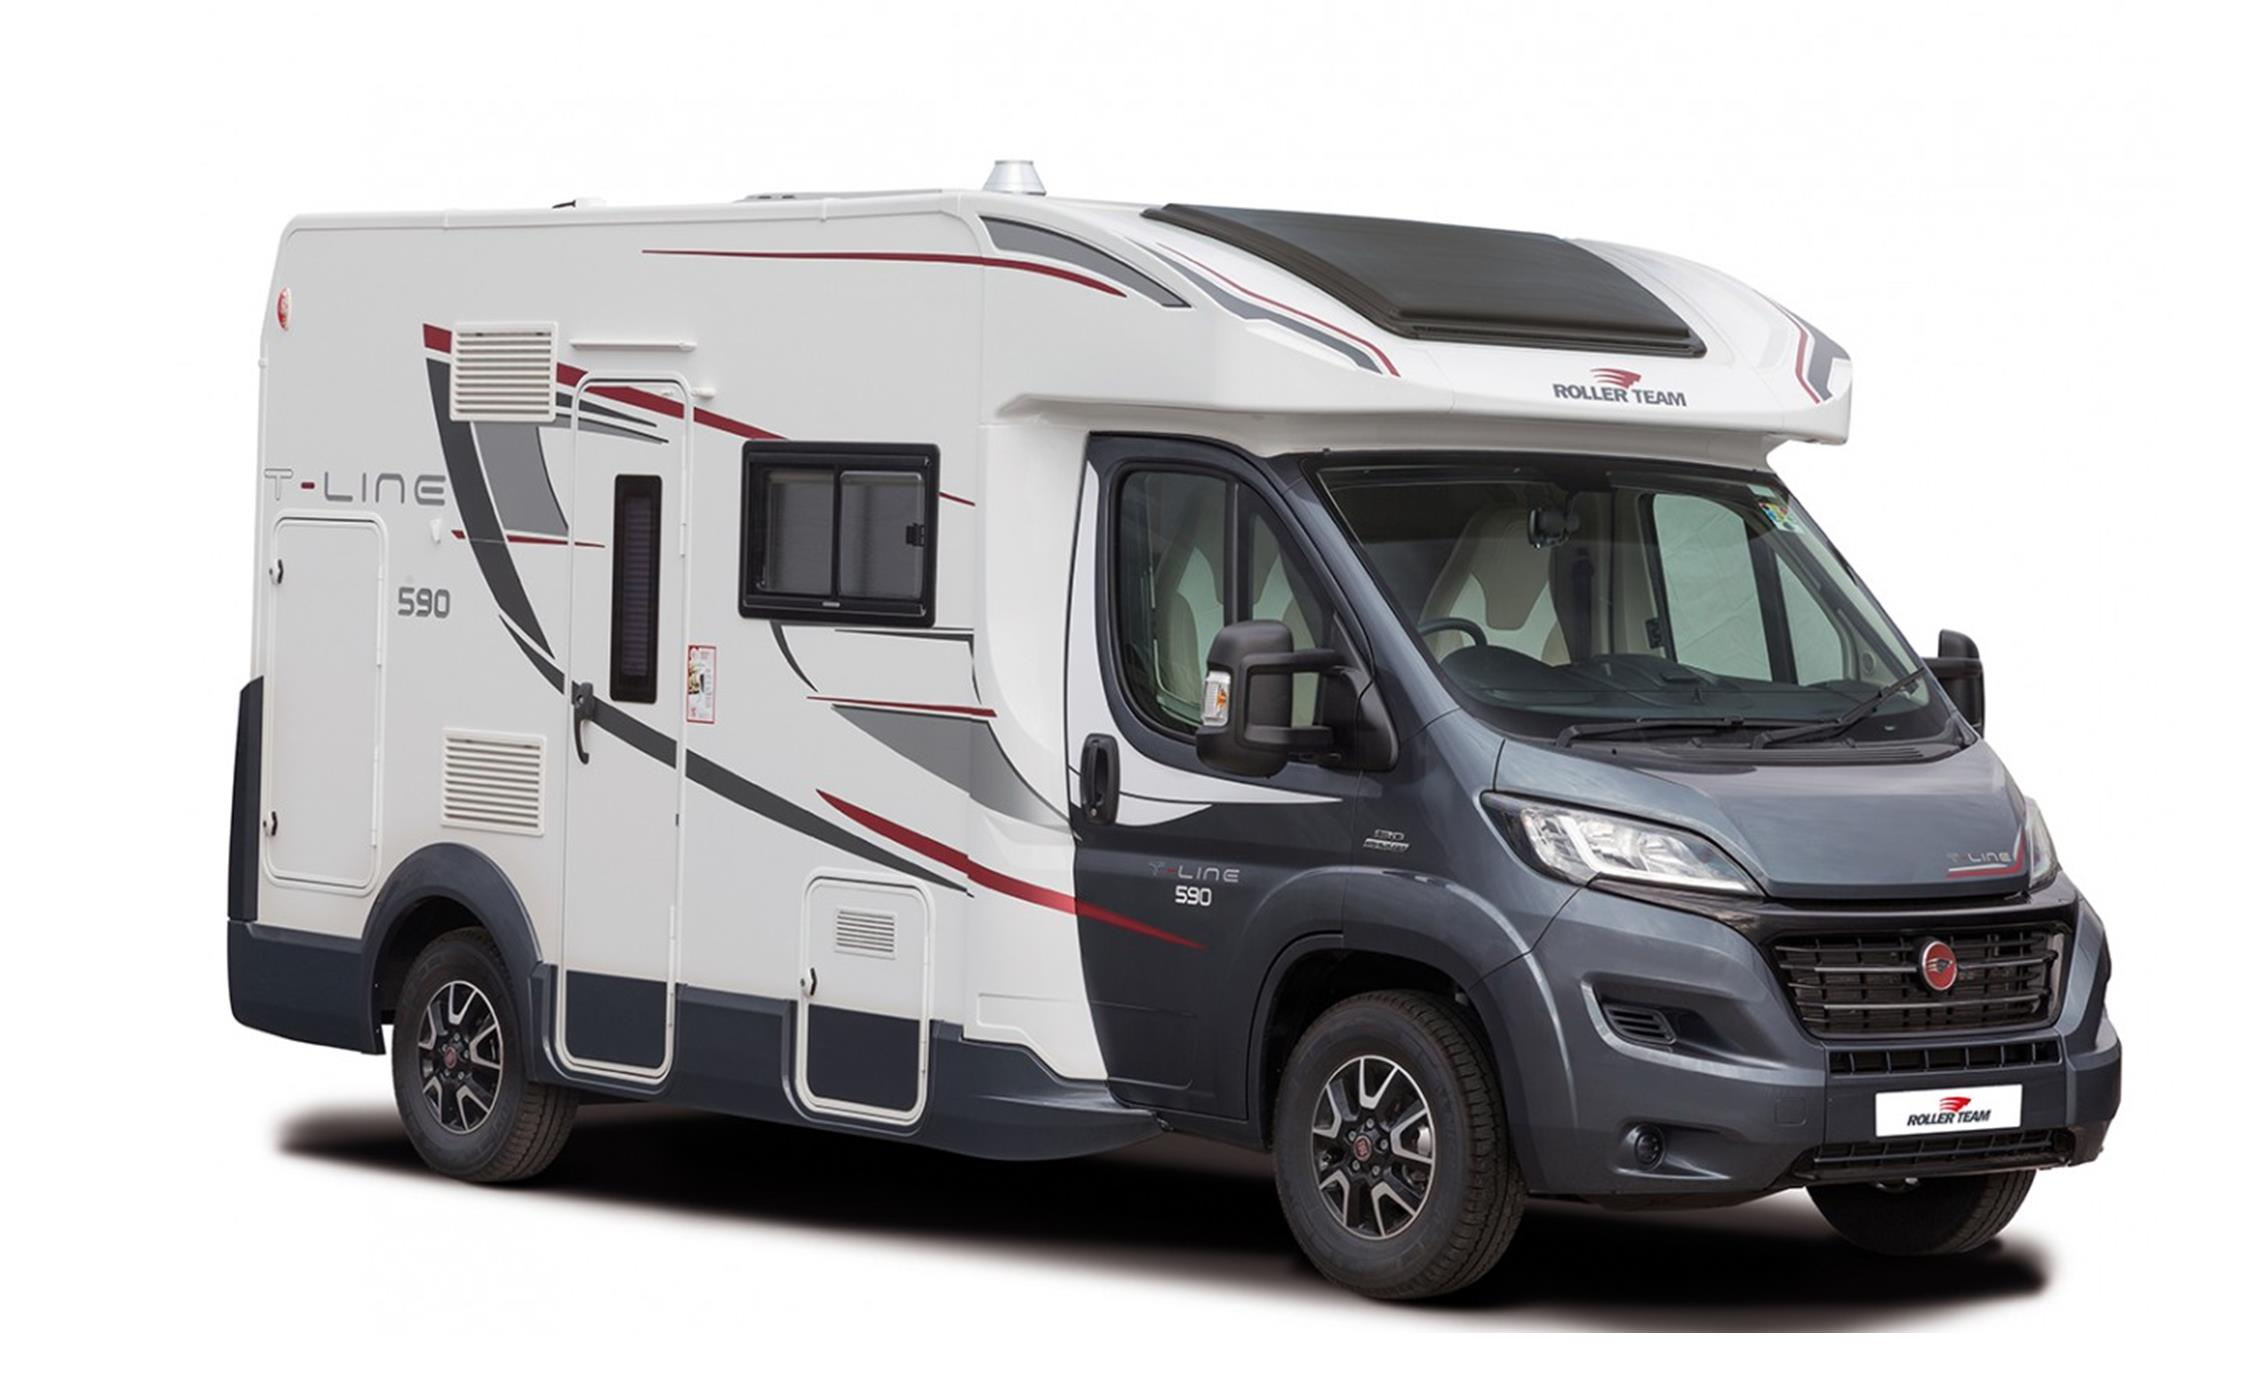 Original Luton   Motorhome Hire By HireaHymer  Motorhome Hire By